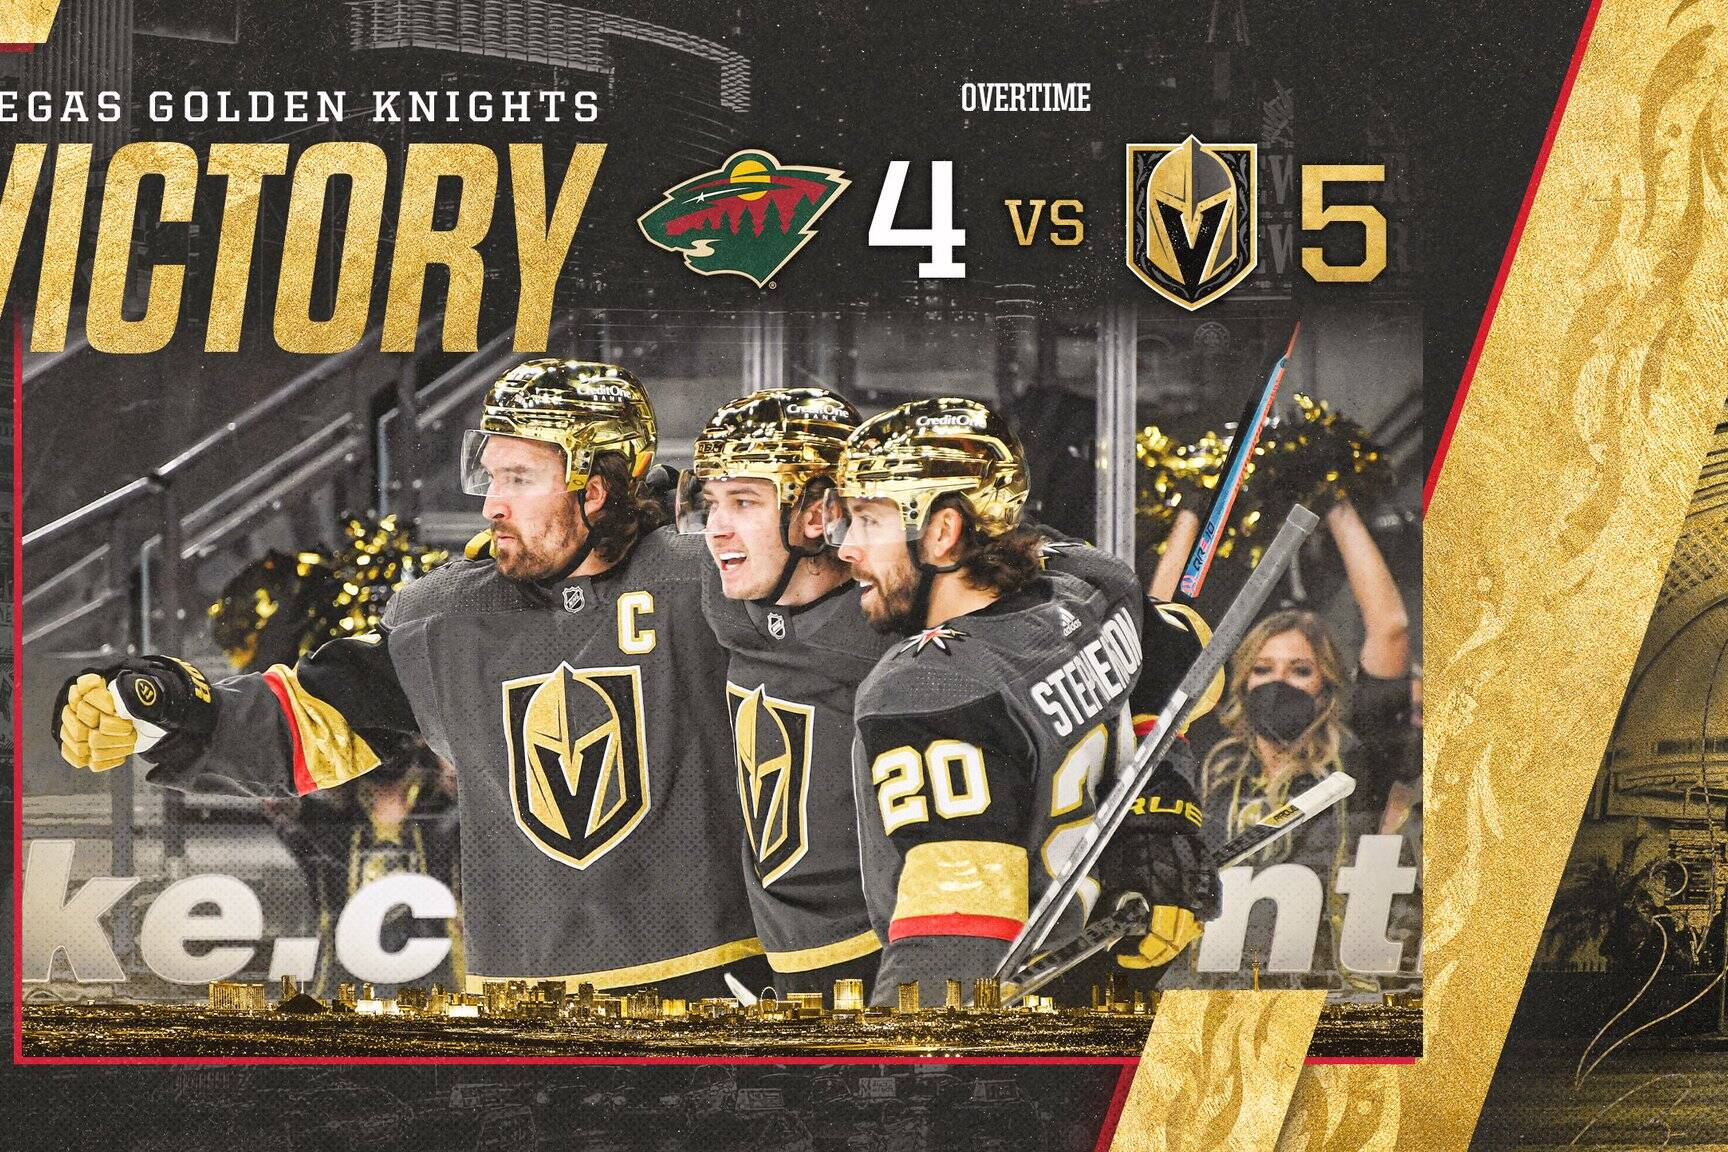 Golden Knights vs Wild